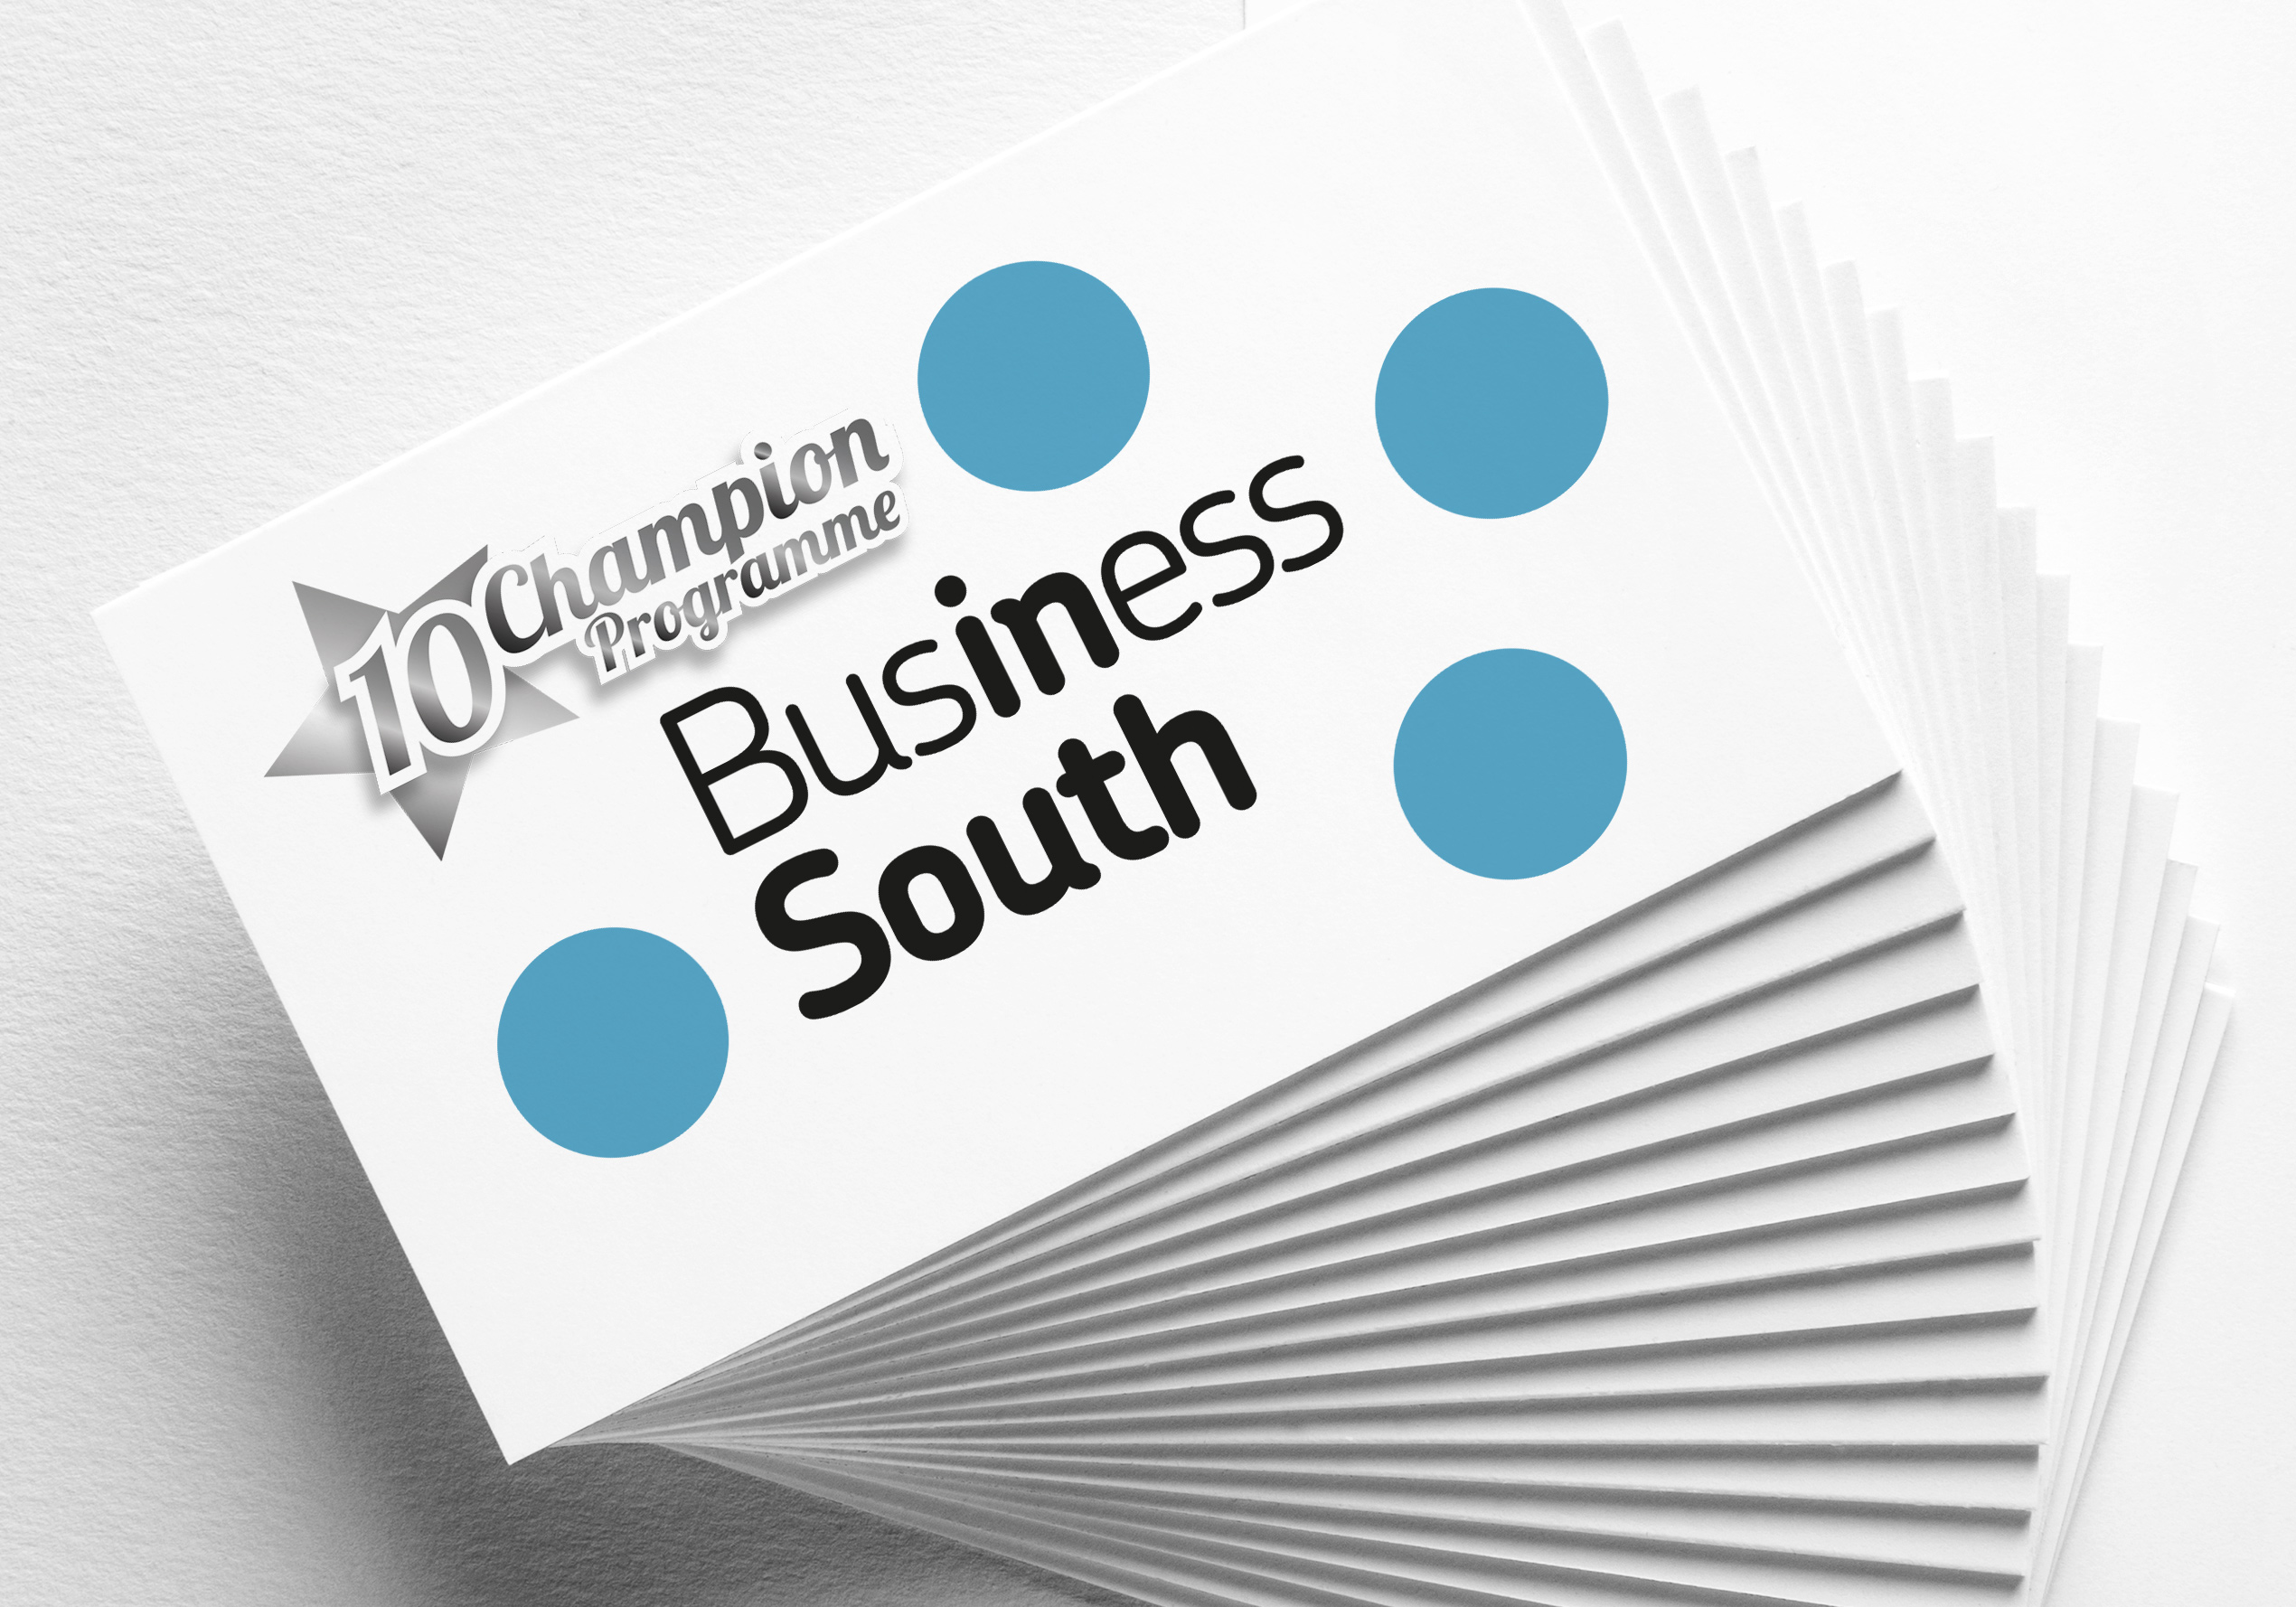 Business South 10 years a champion Business South champion